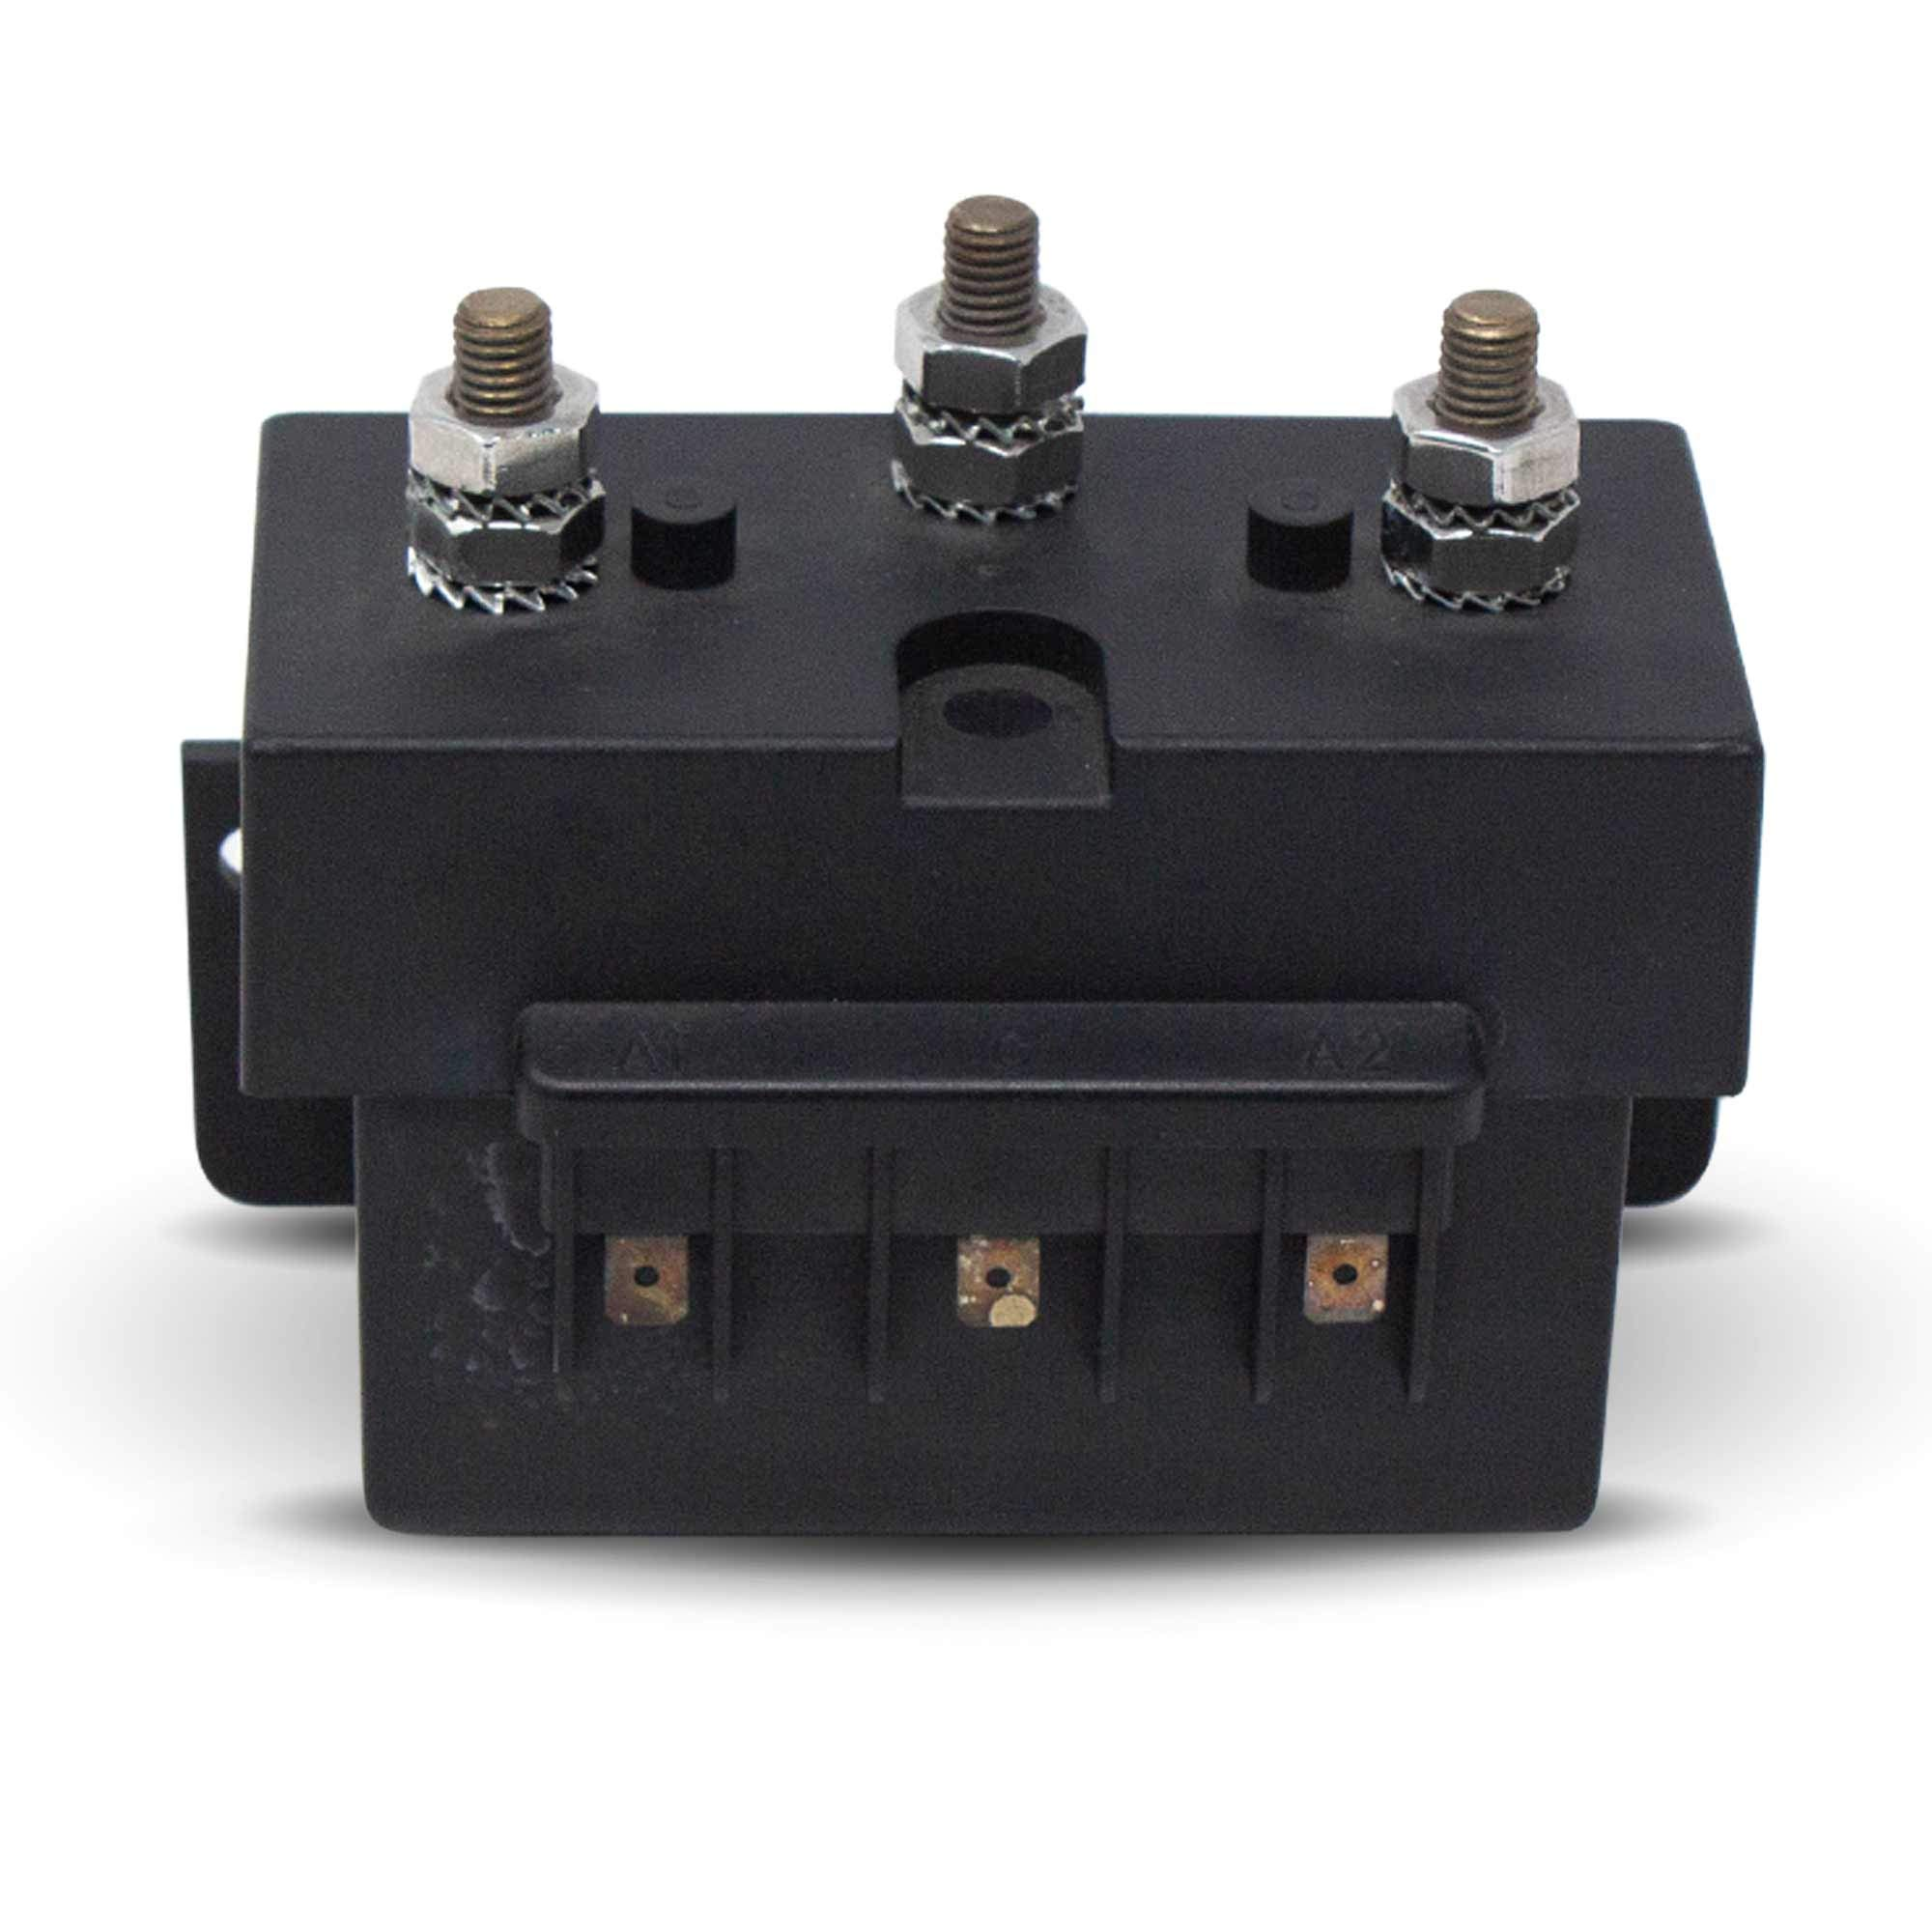 Five Oceans Reversing Solenoid Dual Direction Control Box for 3-Wire Motors Windlass, 12V FO-3293-1 by Five Oceans